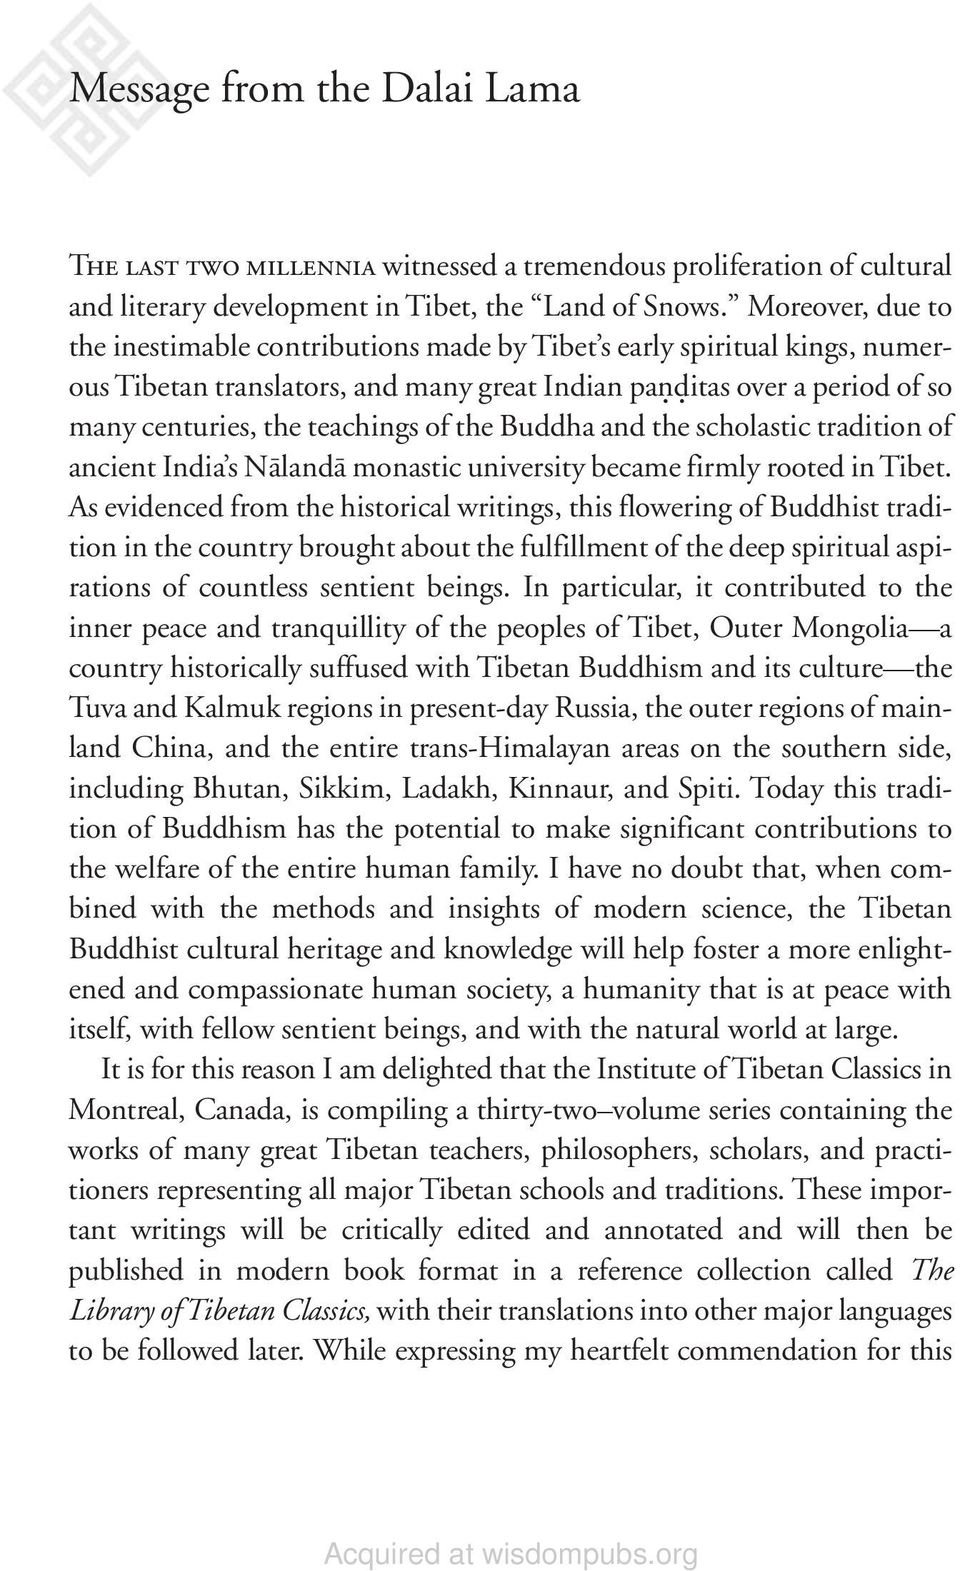 the Buddha and the scholastic tradition of ancient India s N land monastic university became firmly rooted in Tibet.